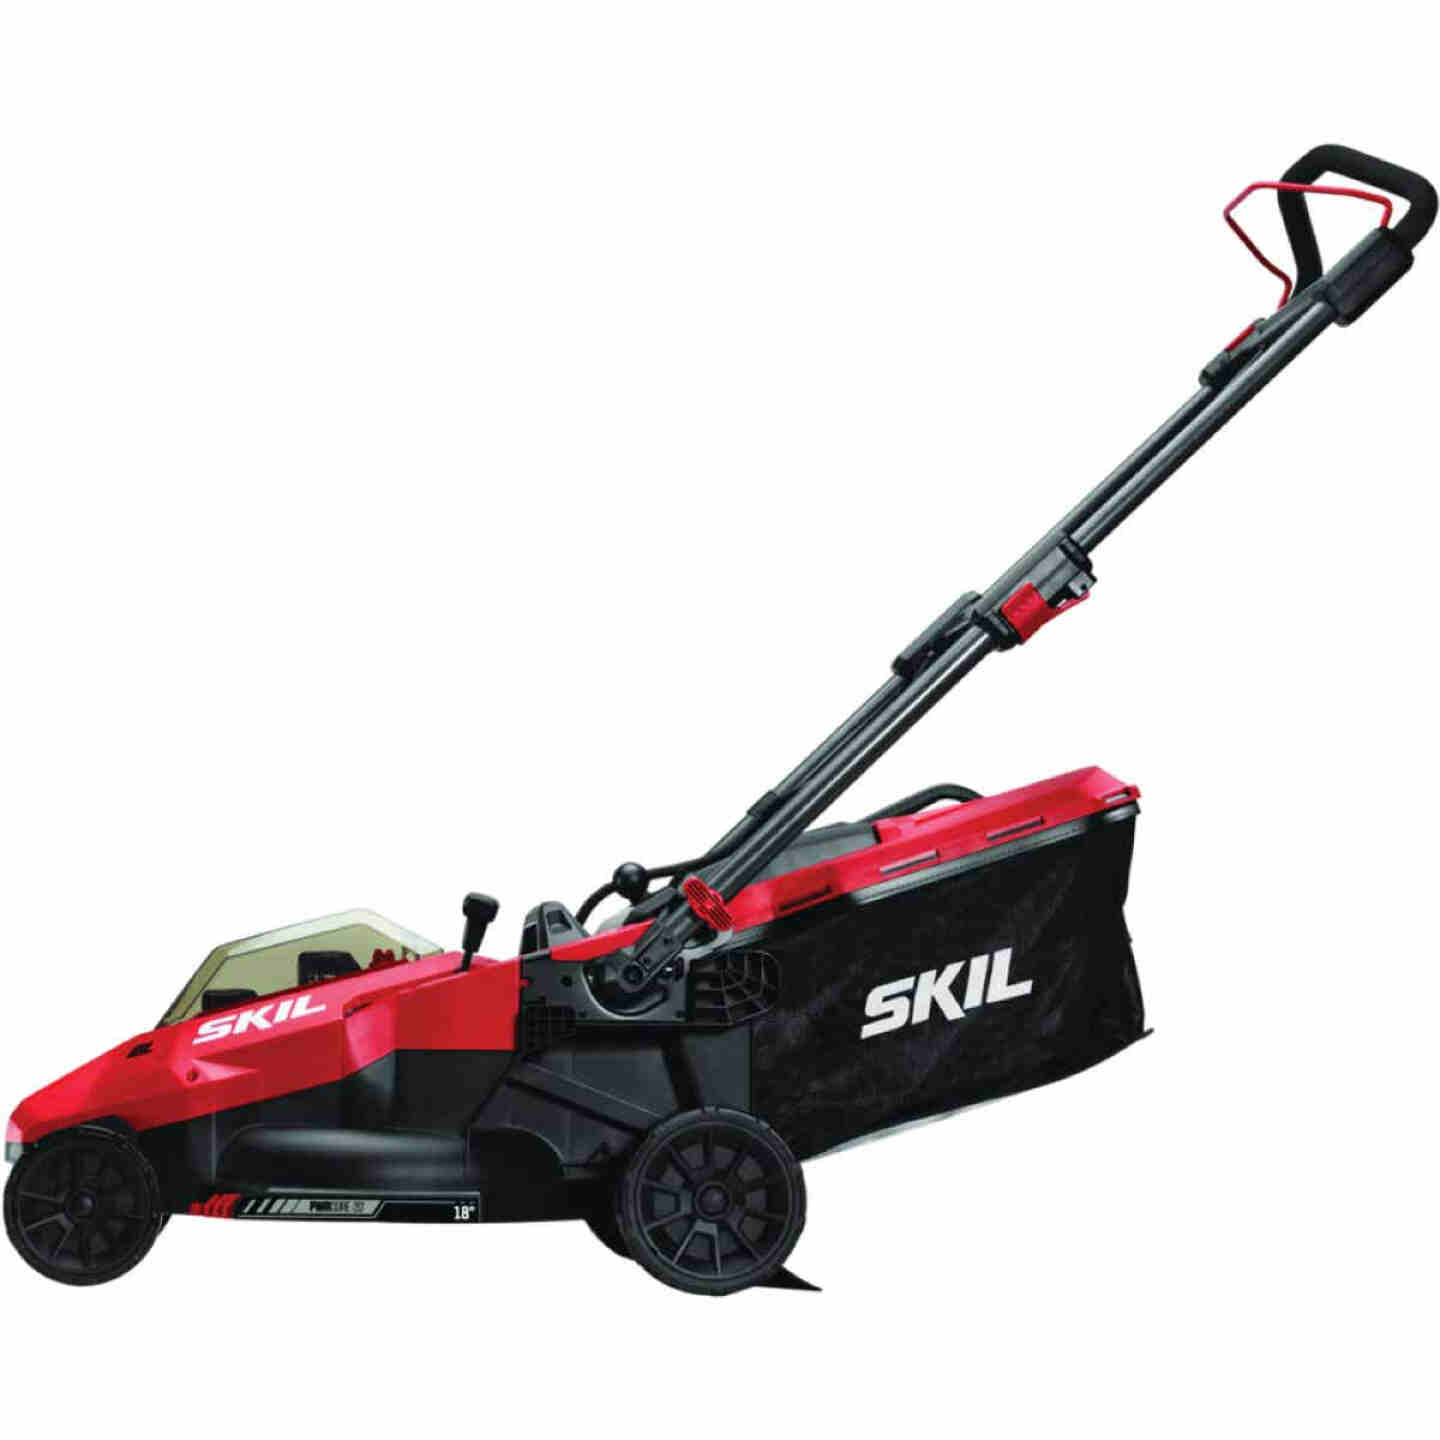 SKIL PwrCore 20V Brushless Push Lawn Mower with Two 4.0 Ah Batteries and Dual Port Charger Image 1